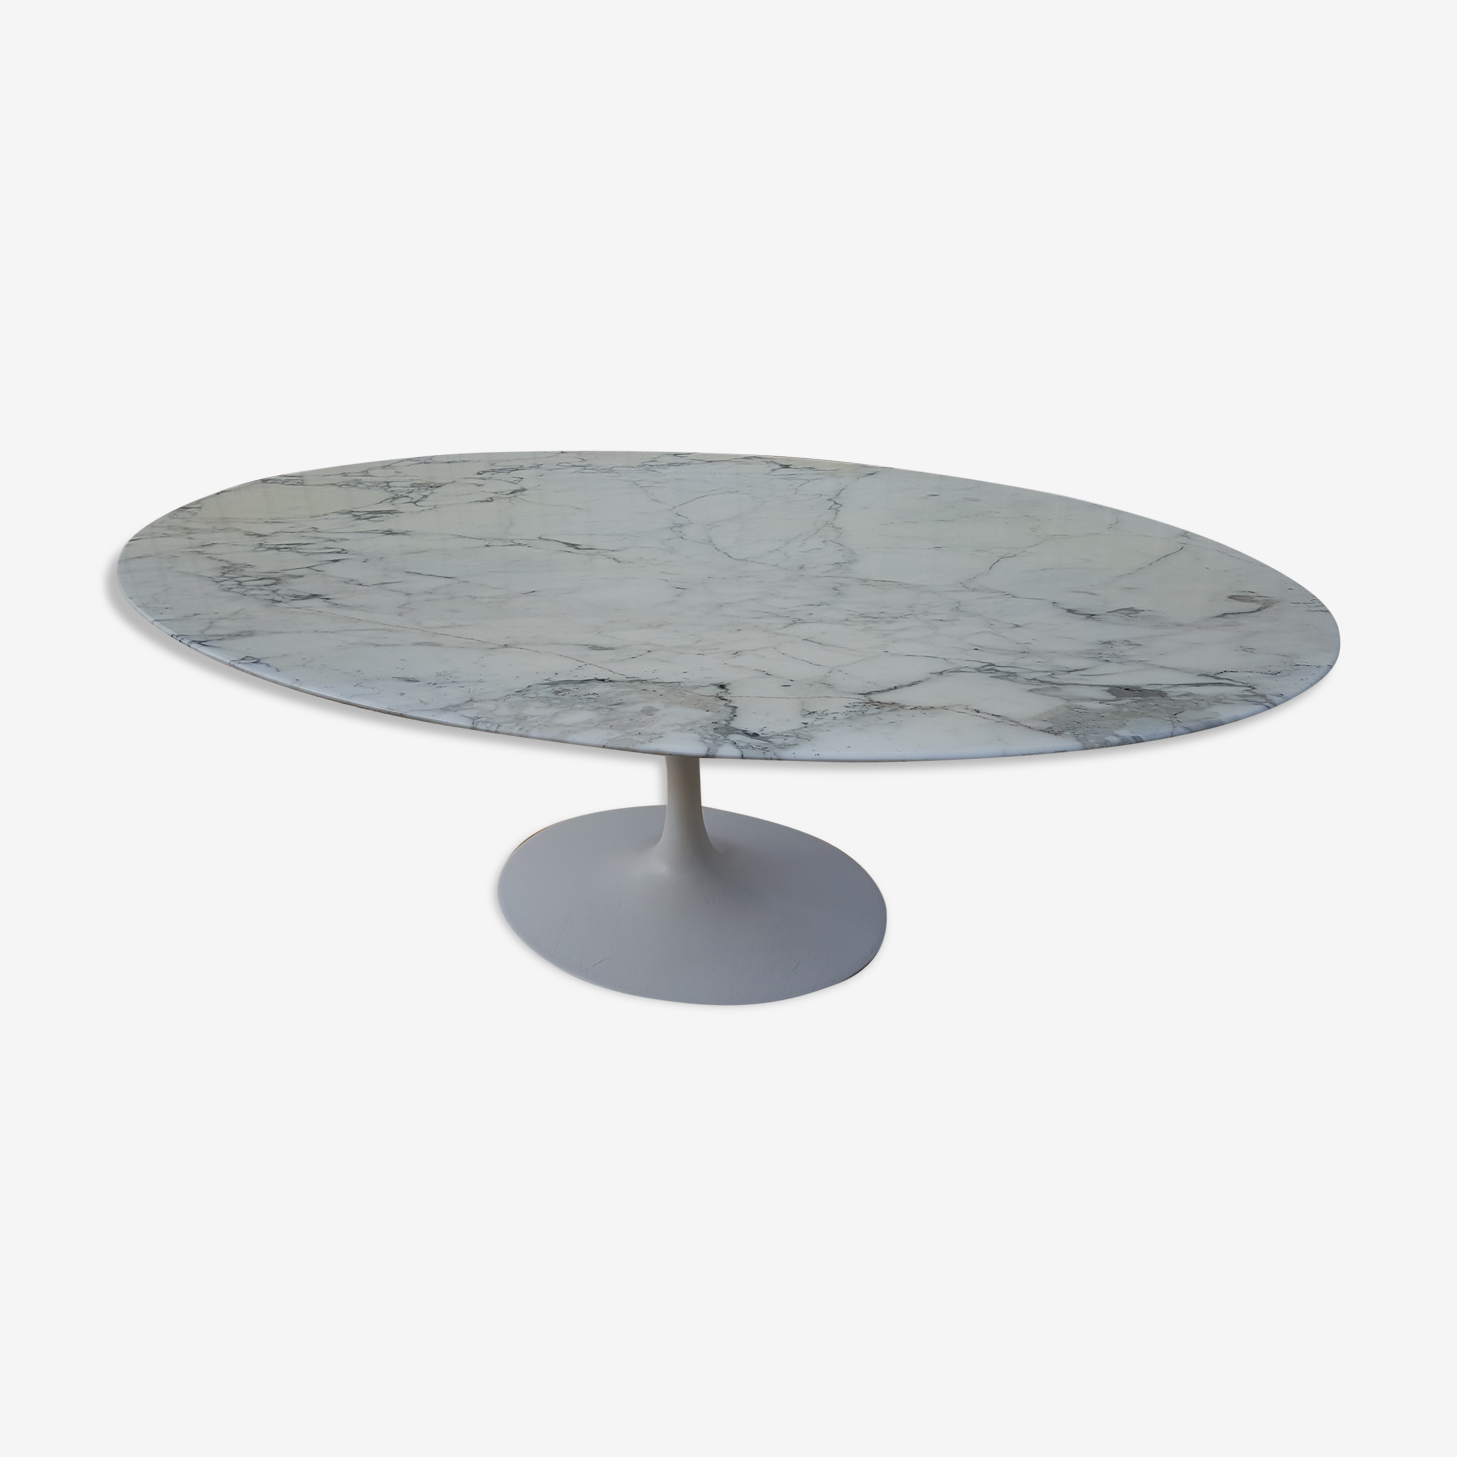 Table marbre Eero Saarinen pour Knoll